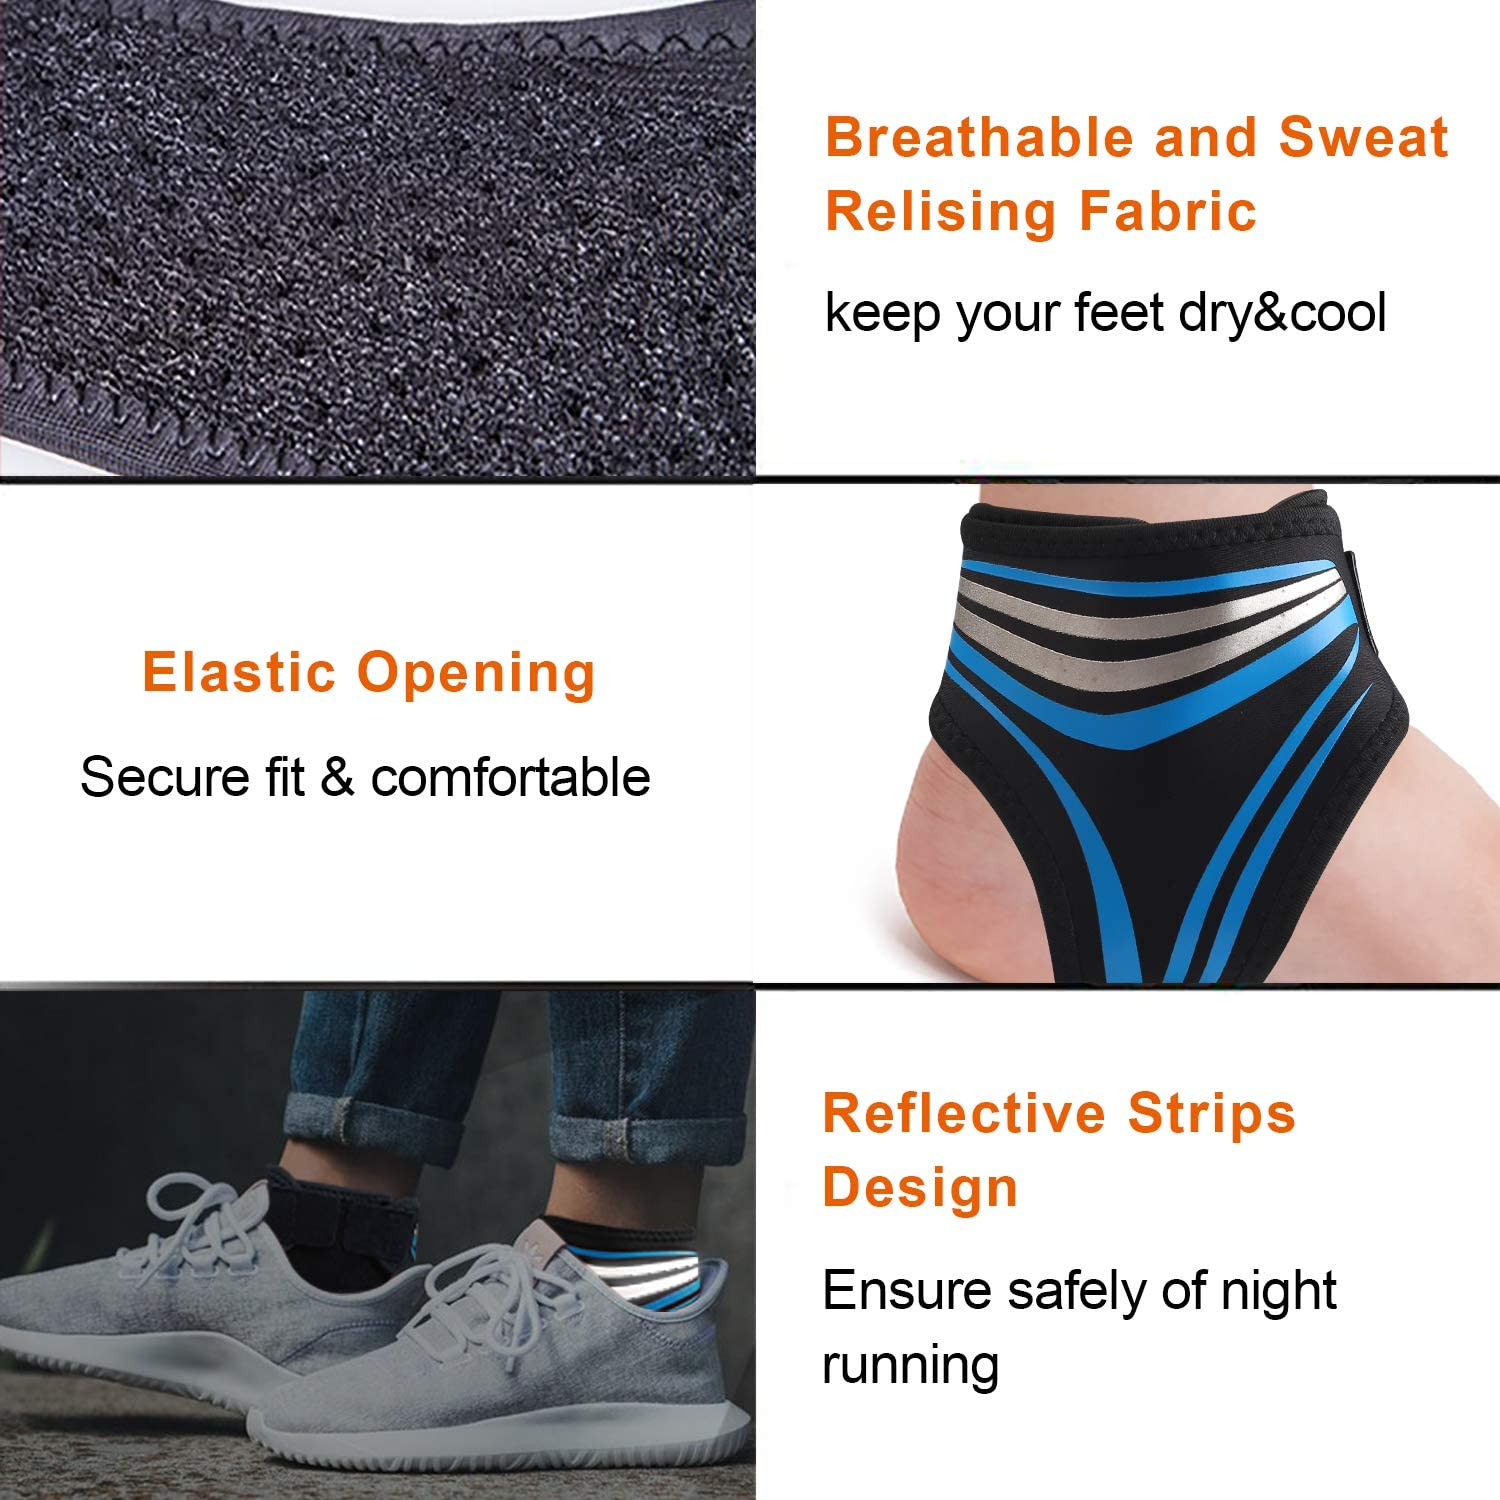 Vetoo Ankle Support Breathable Super Elastic Reduce Ankle Swelling Spur Blood Circulation 1 Pair One Size Fits All Ankle Brace Left /& Right Ideal Foot Sleeve for Injury Recovery